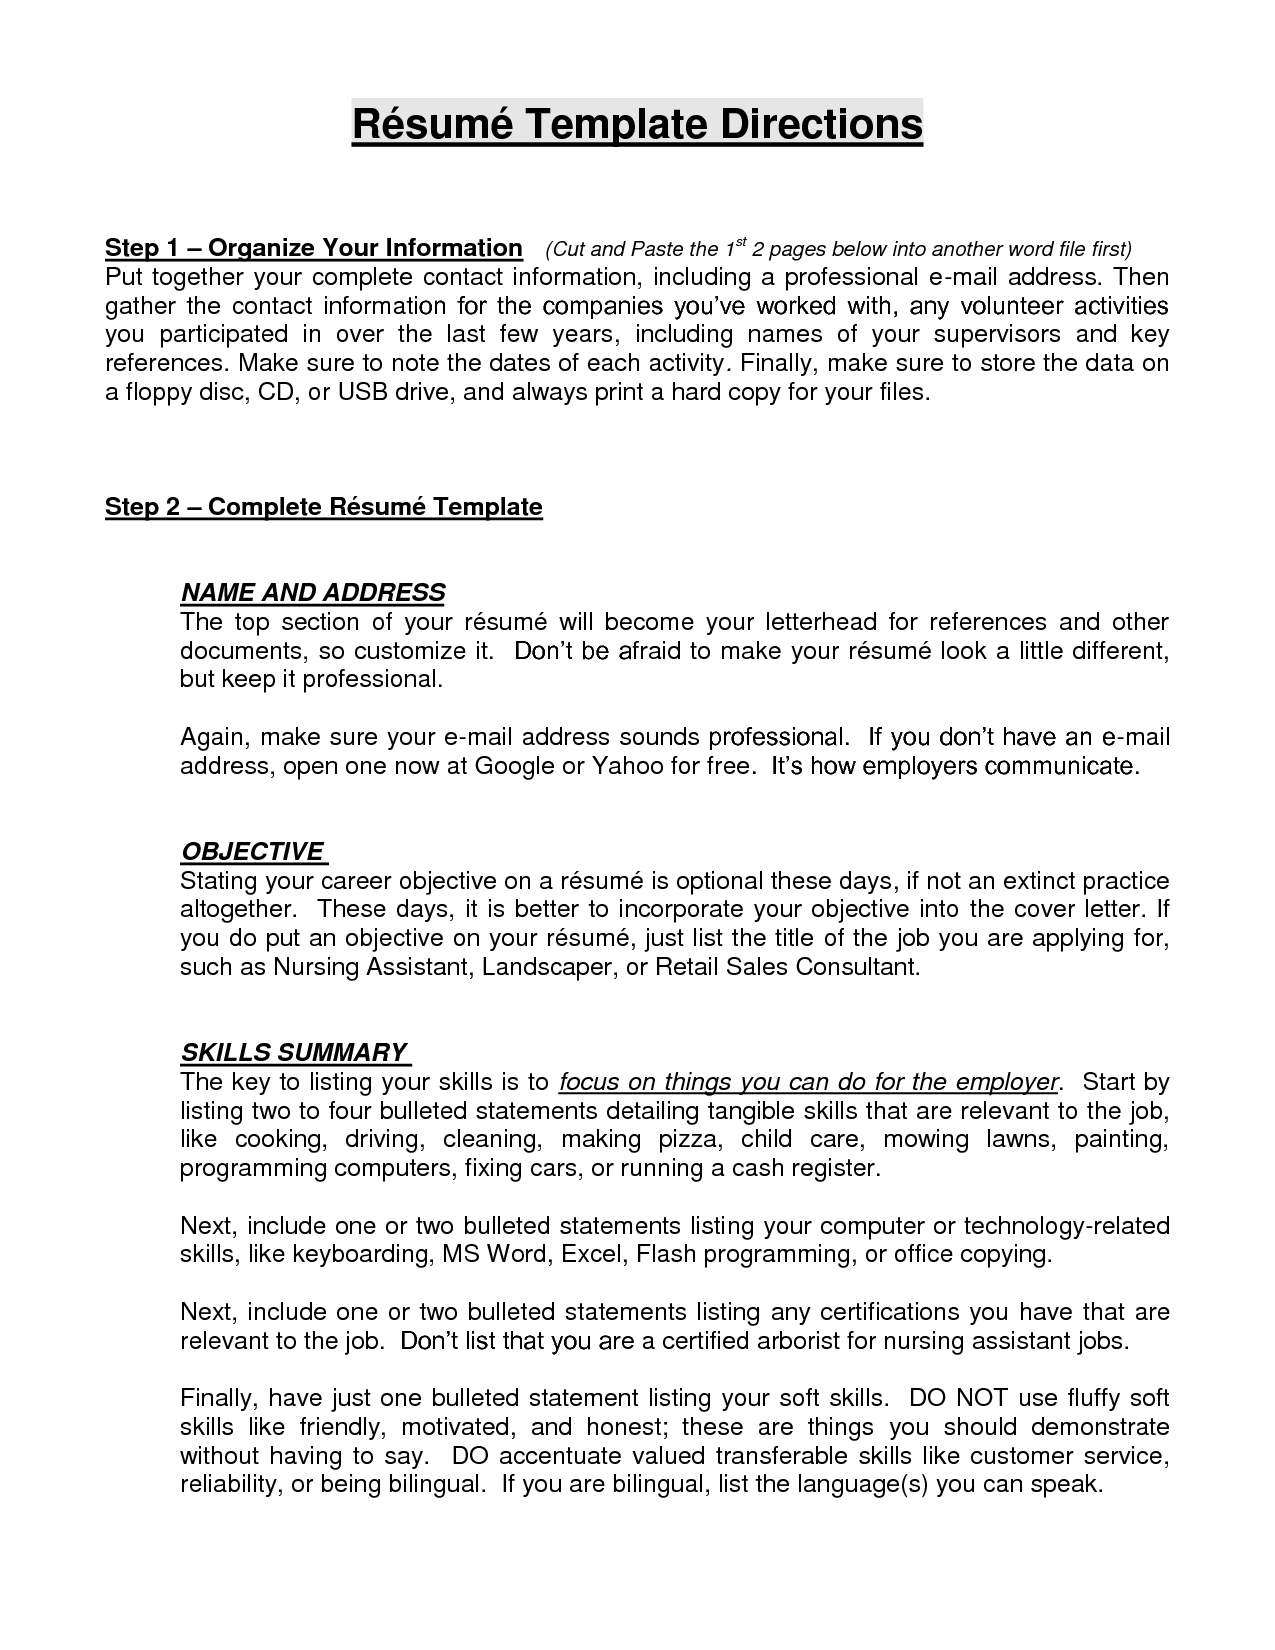 a resume objective resume building objective statement - Resume How To Write Objective